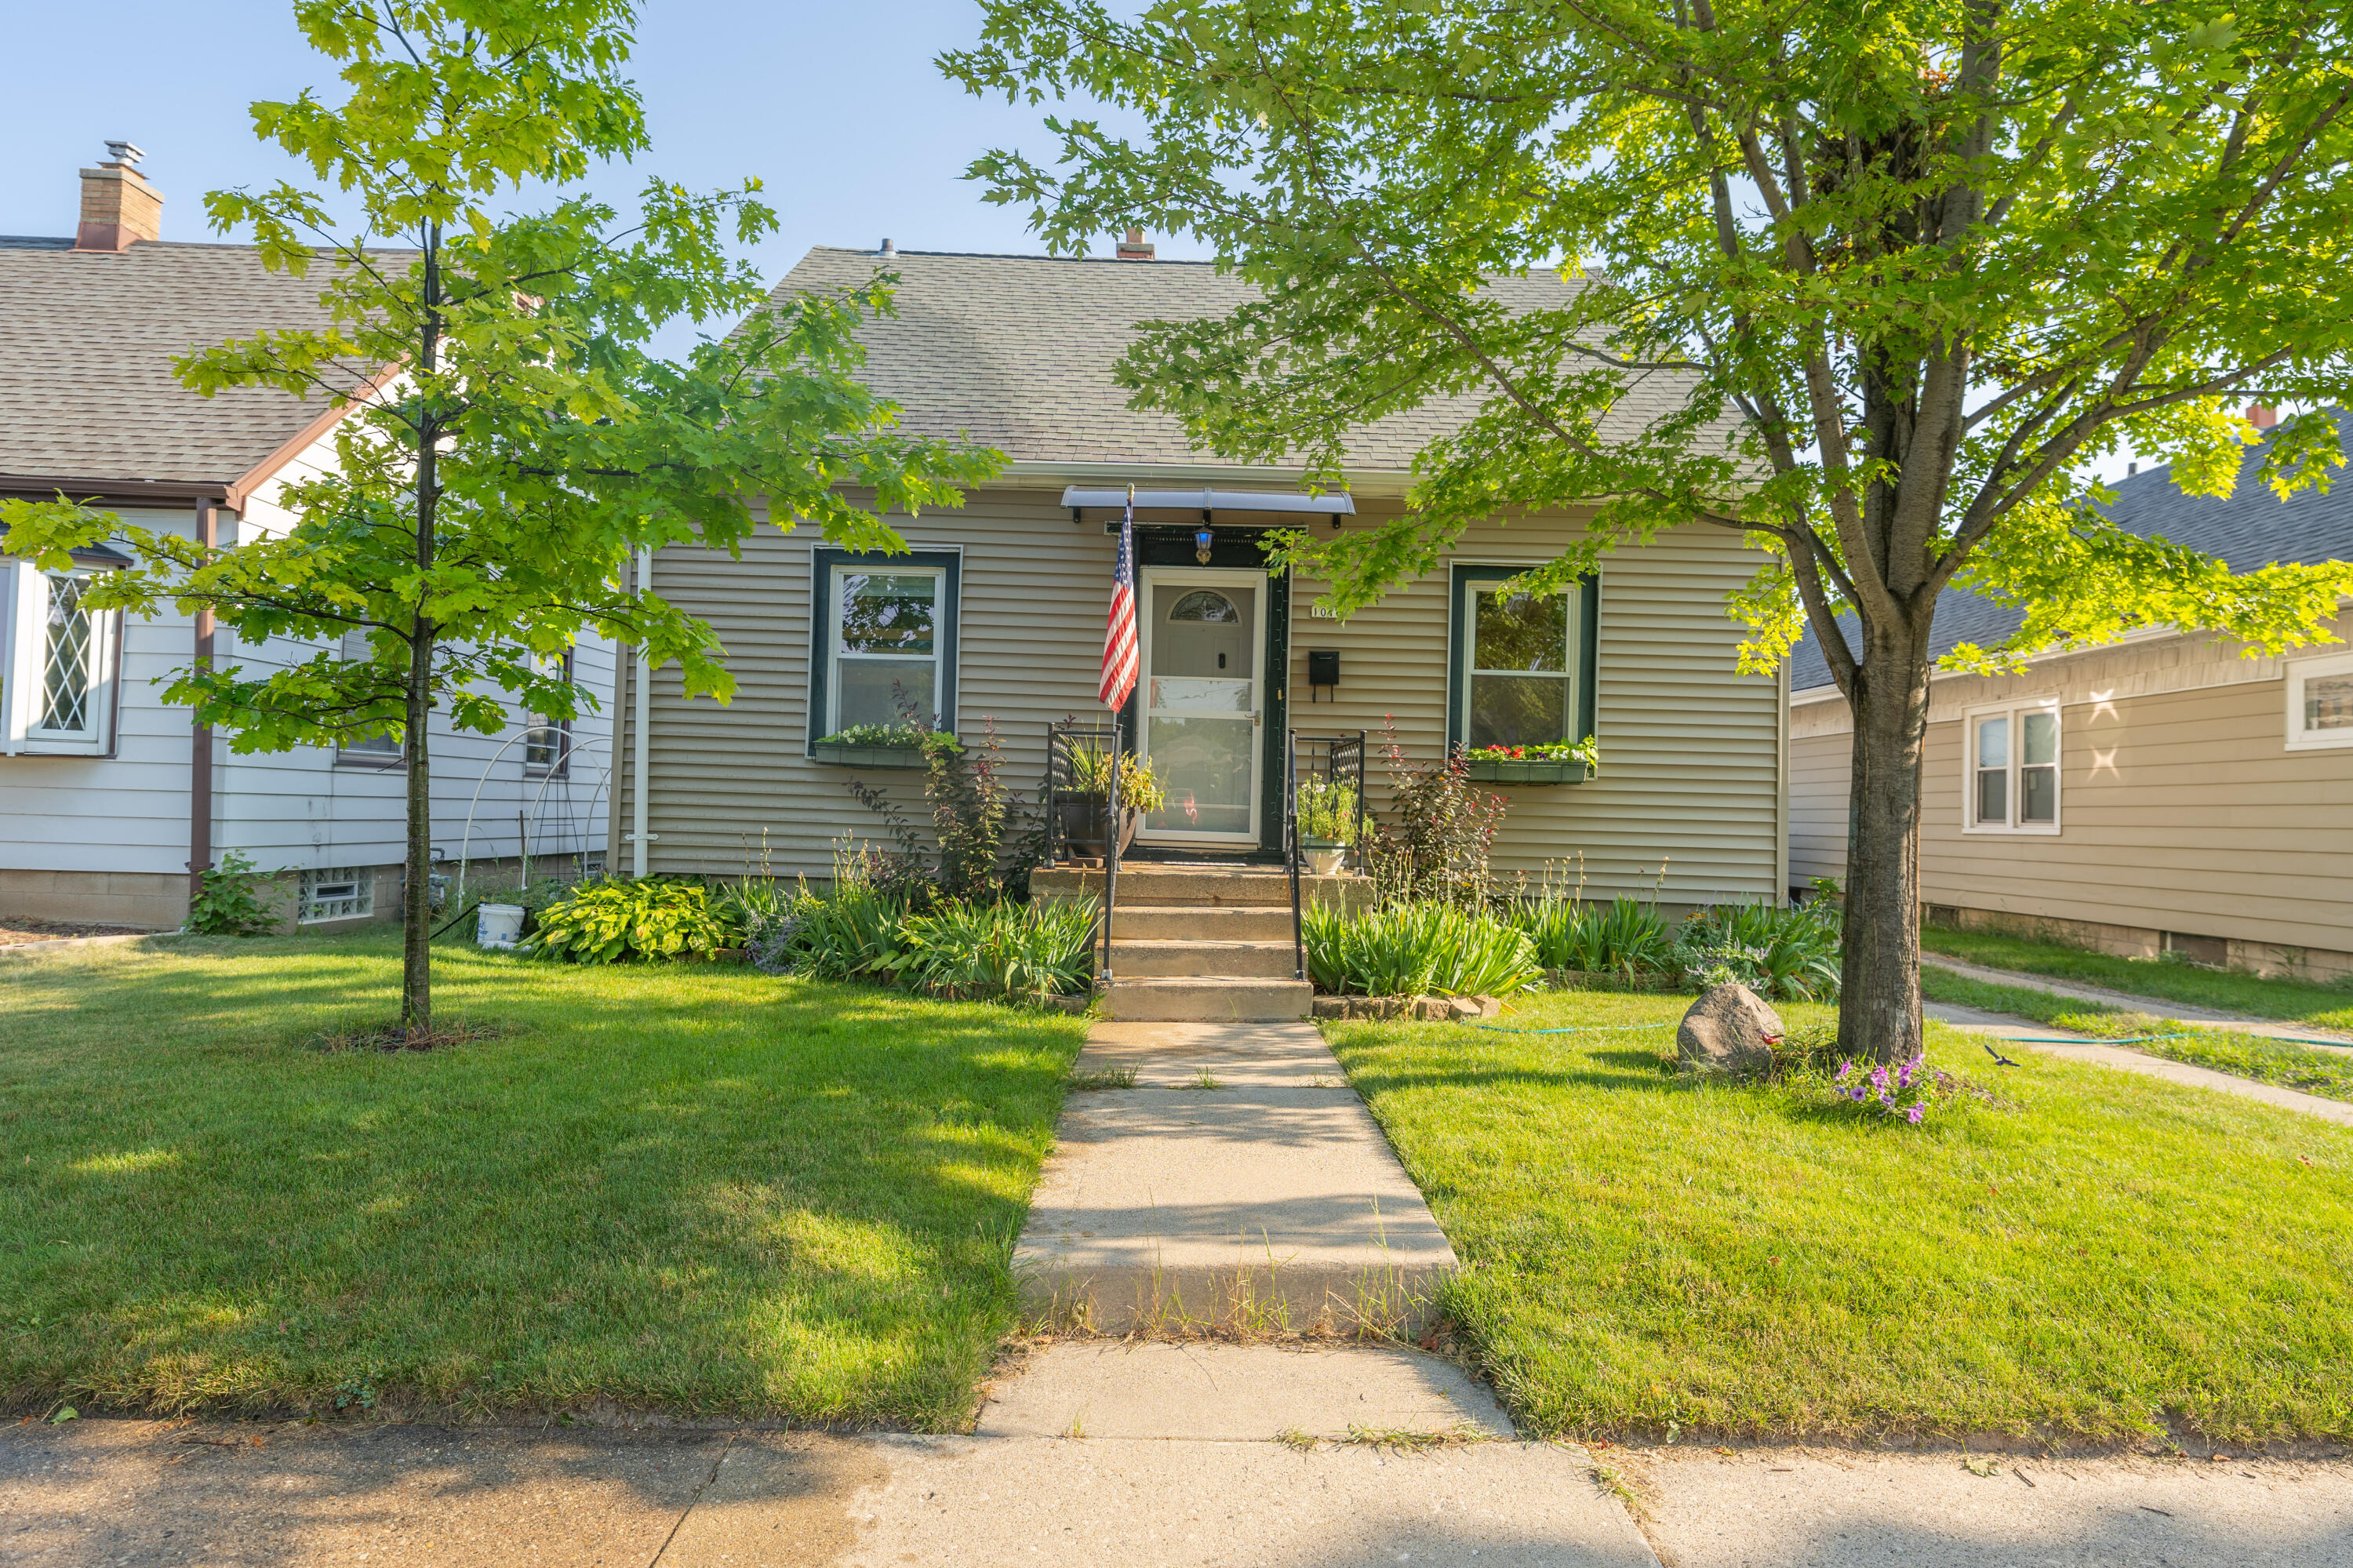 1016 Howard Ave, Milwaukee, Wisconsin 53207, 3 Bedrooms Bedrooms, ,1 BathroomBathrooms,Single-Family,For Sale,Howard Ave,1755451